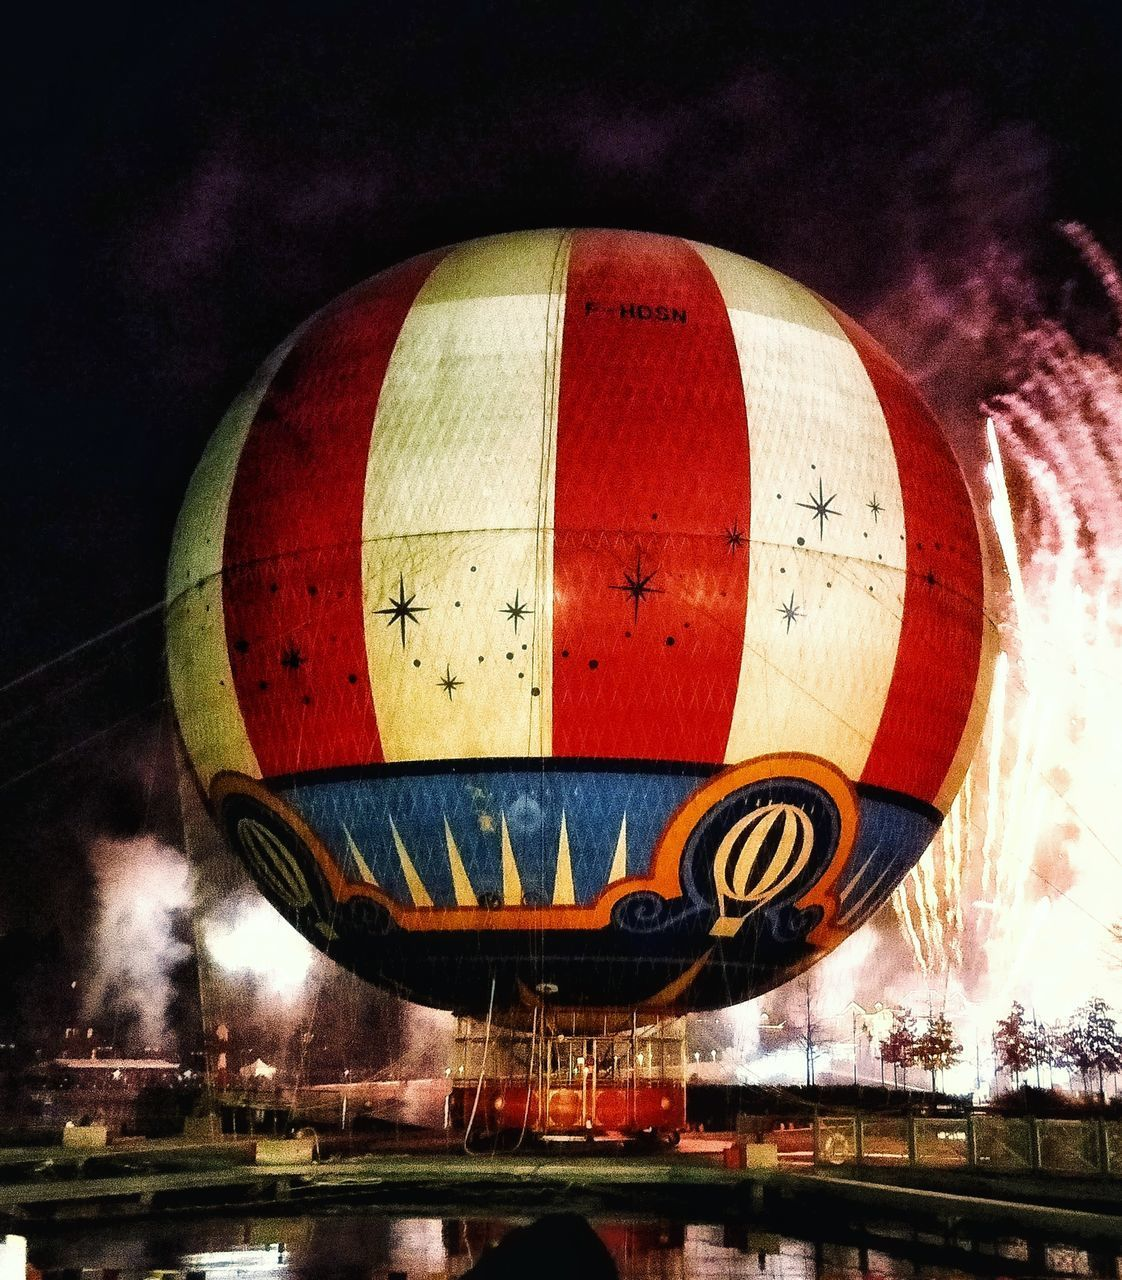 night, architecture, nature, illuminated, sky, multi colored, built structure, no people, building exterior, air vehicle, outdoors, transportation, hot air balloon, water, travel, dusk, travel destinations, adventure, mode of transportation, ballooning festival